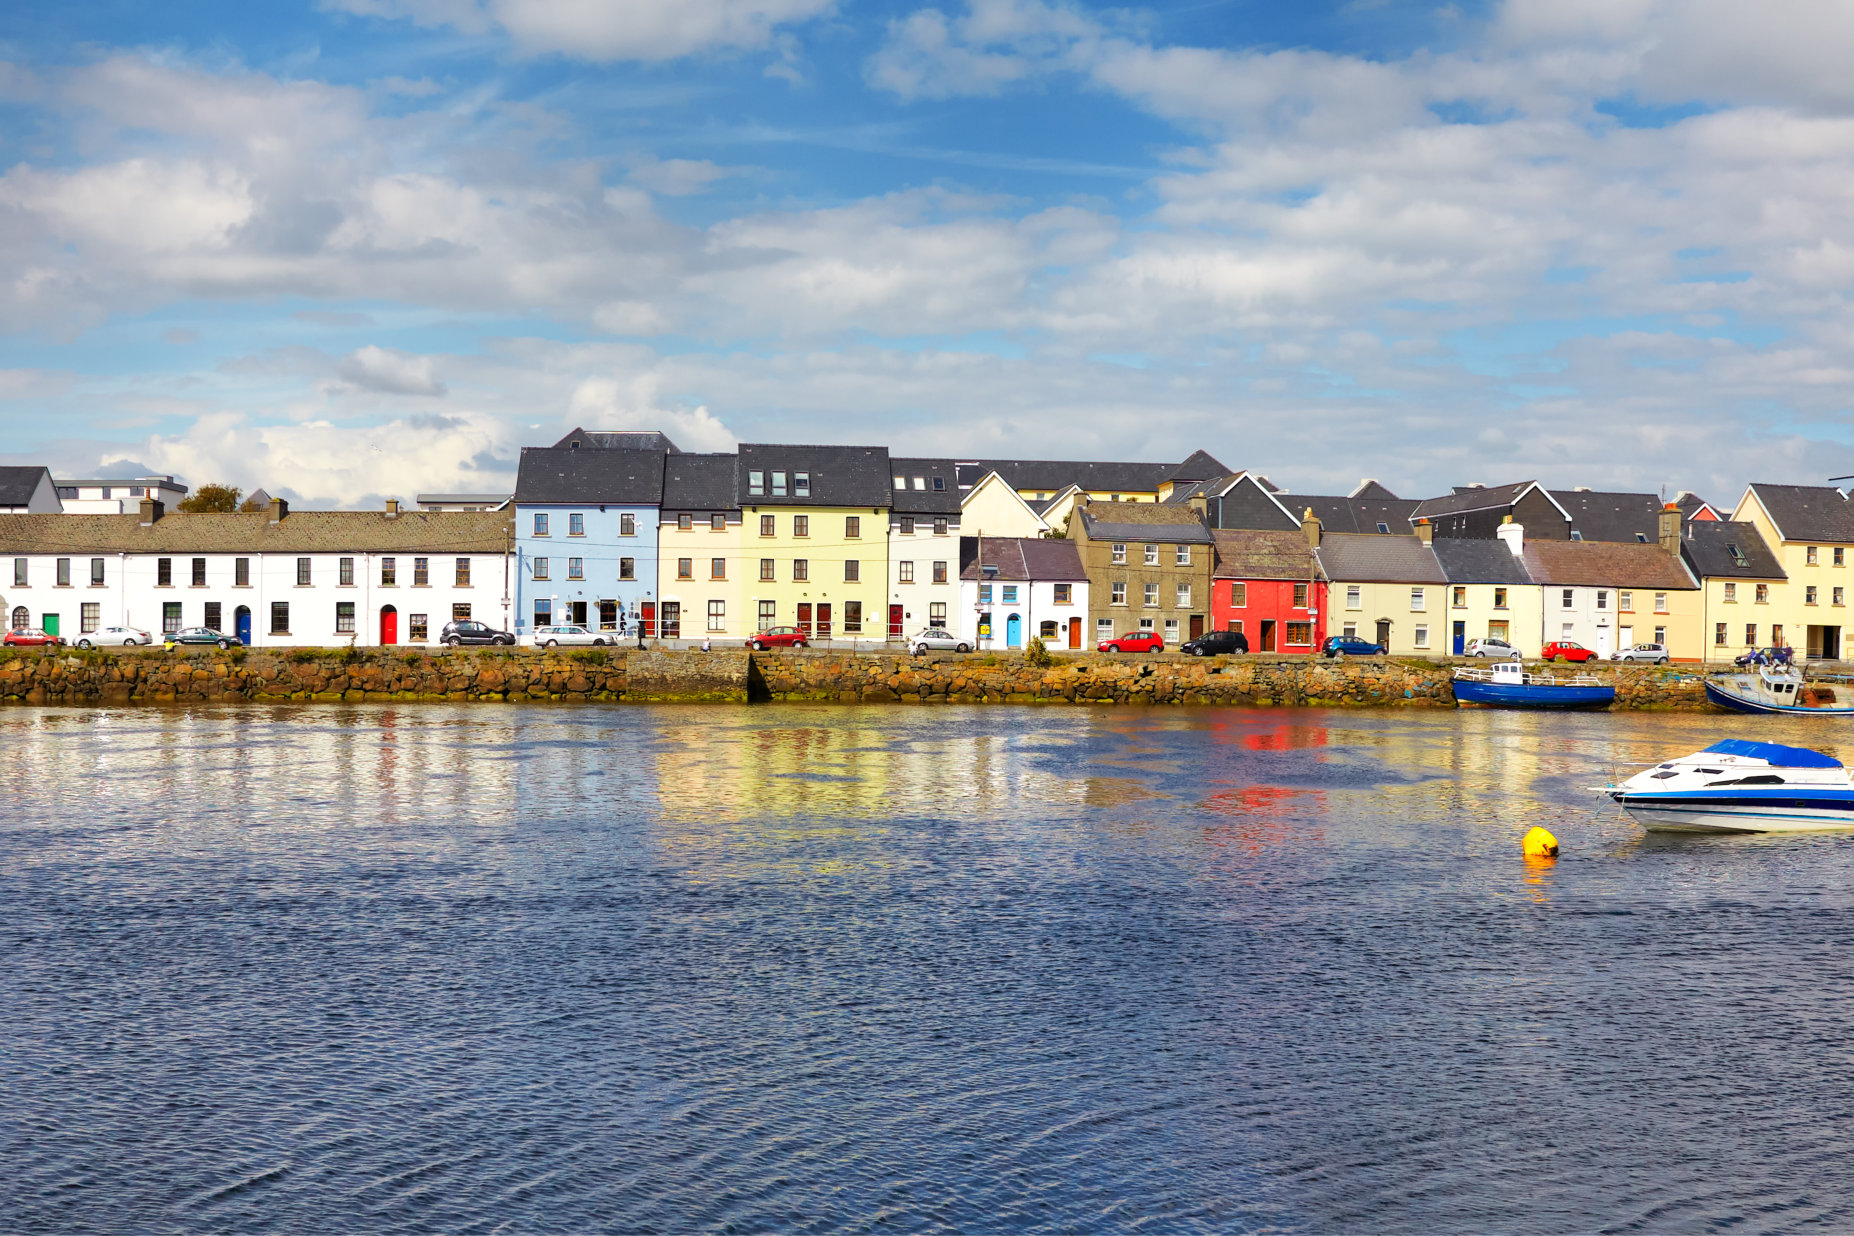 The Western Hotel Galway